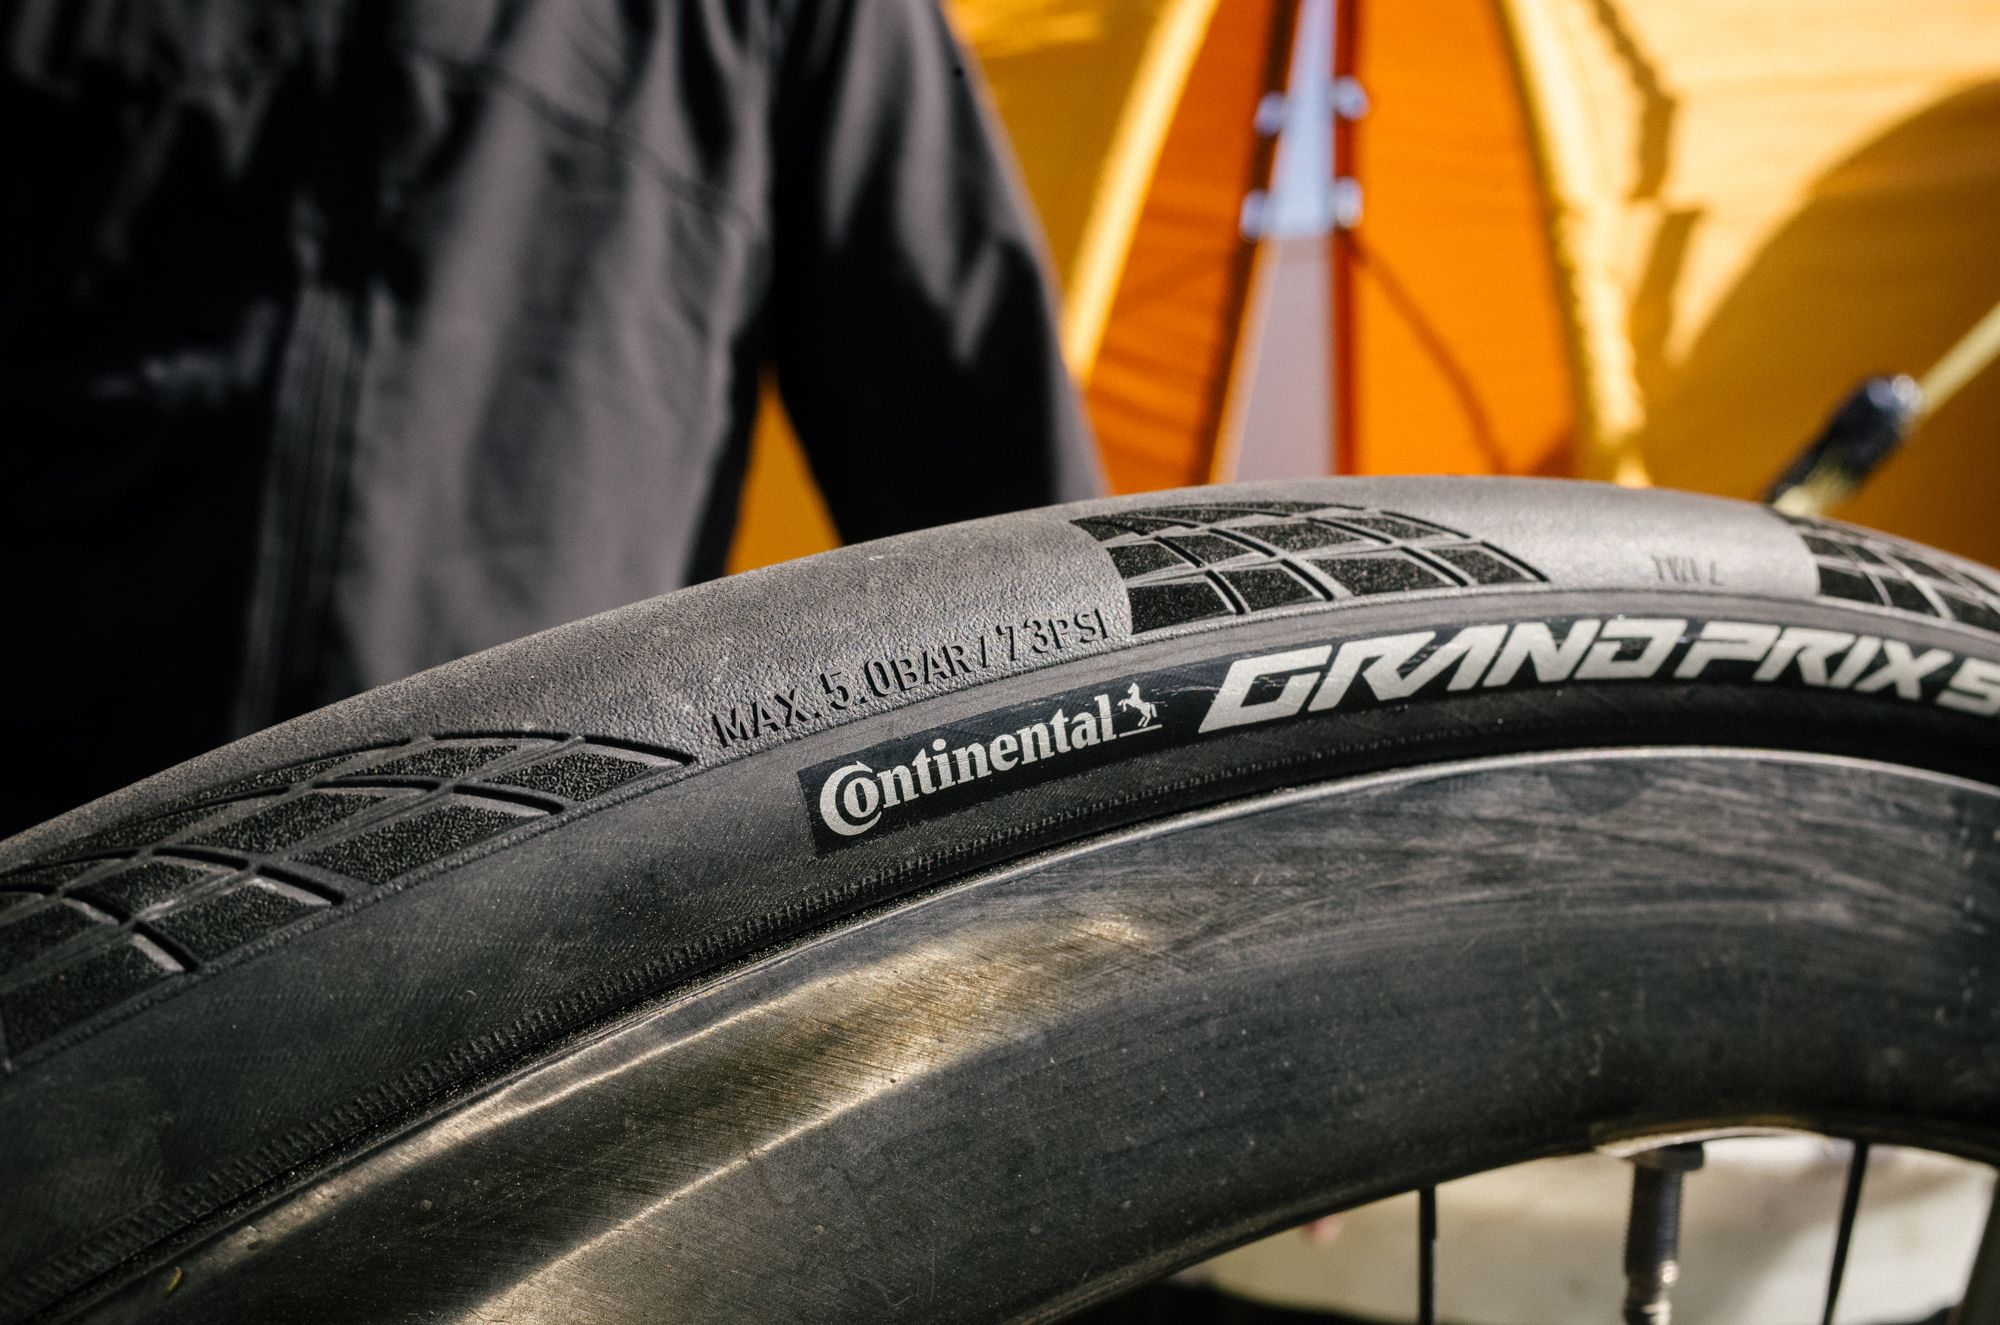 Continental finally releasing hookless compatible tubeless tires was good news for many wheel companies that want to explore the technology further.